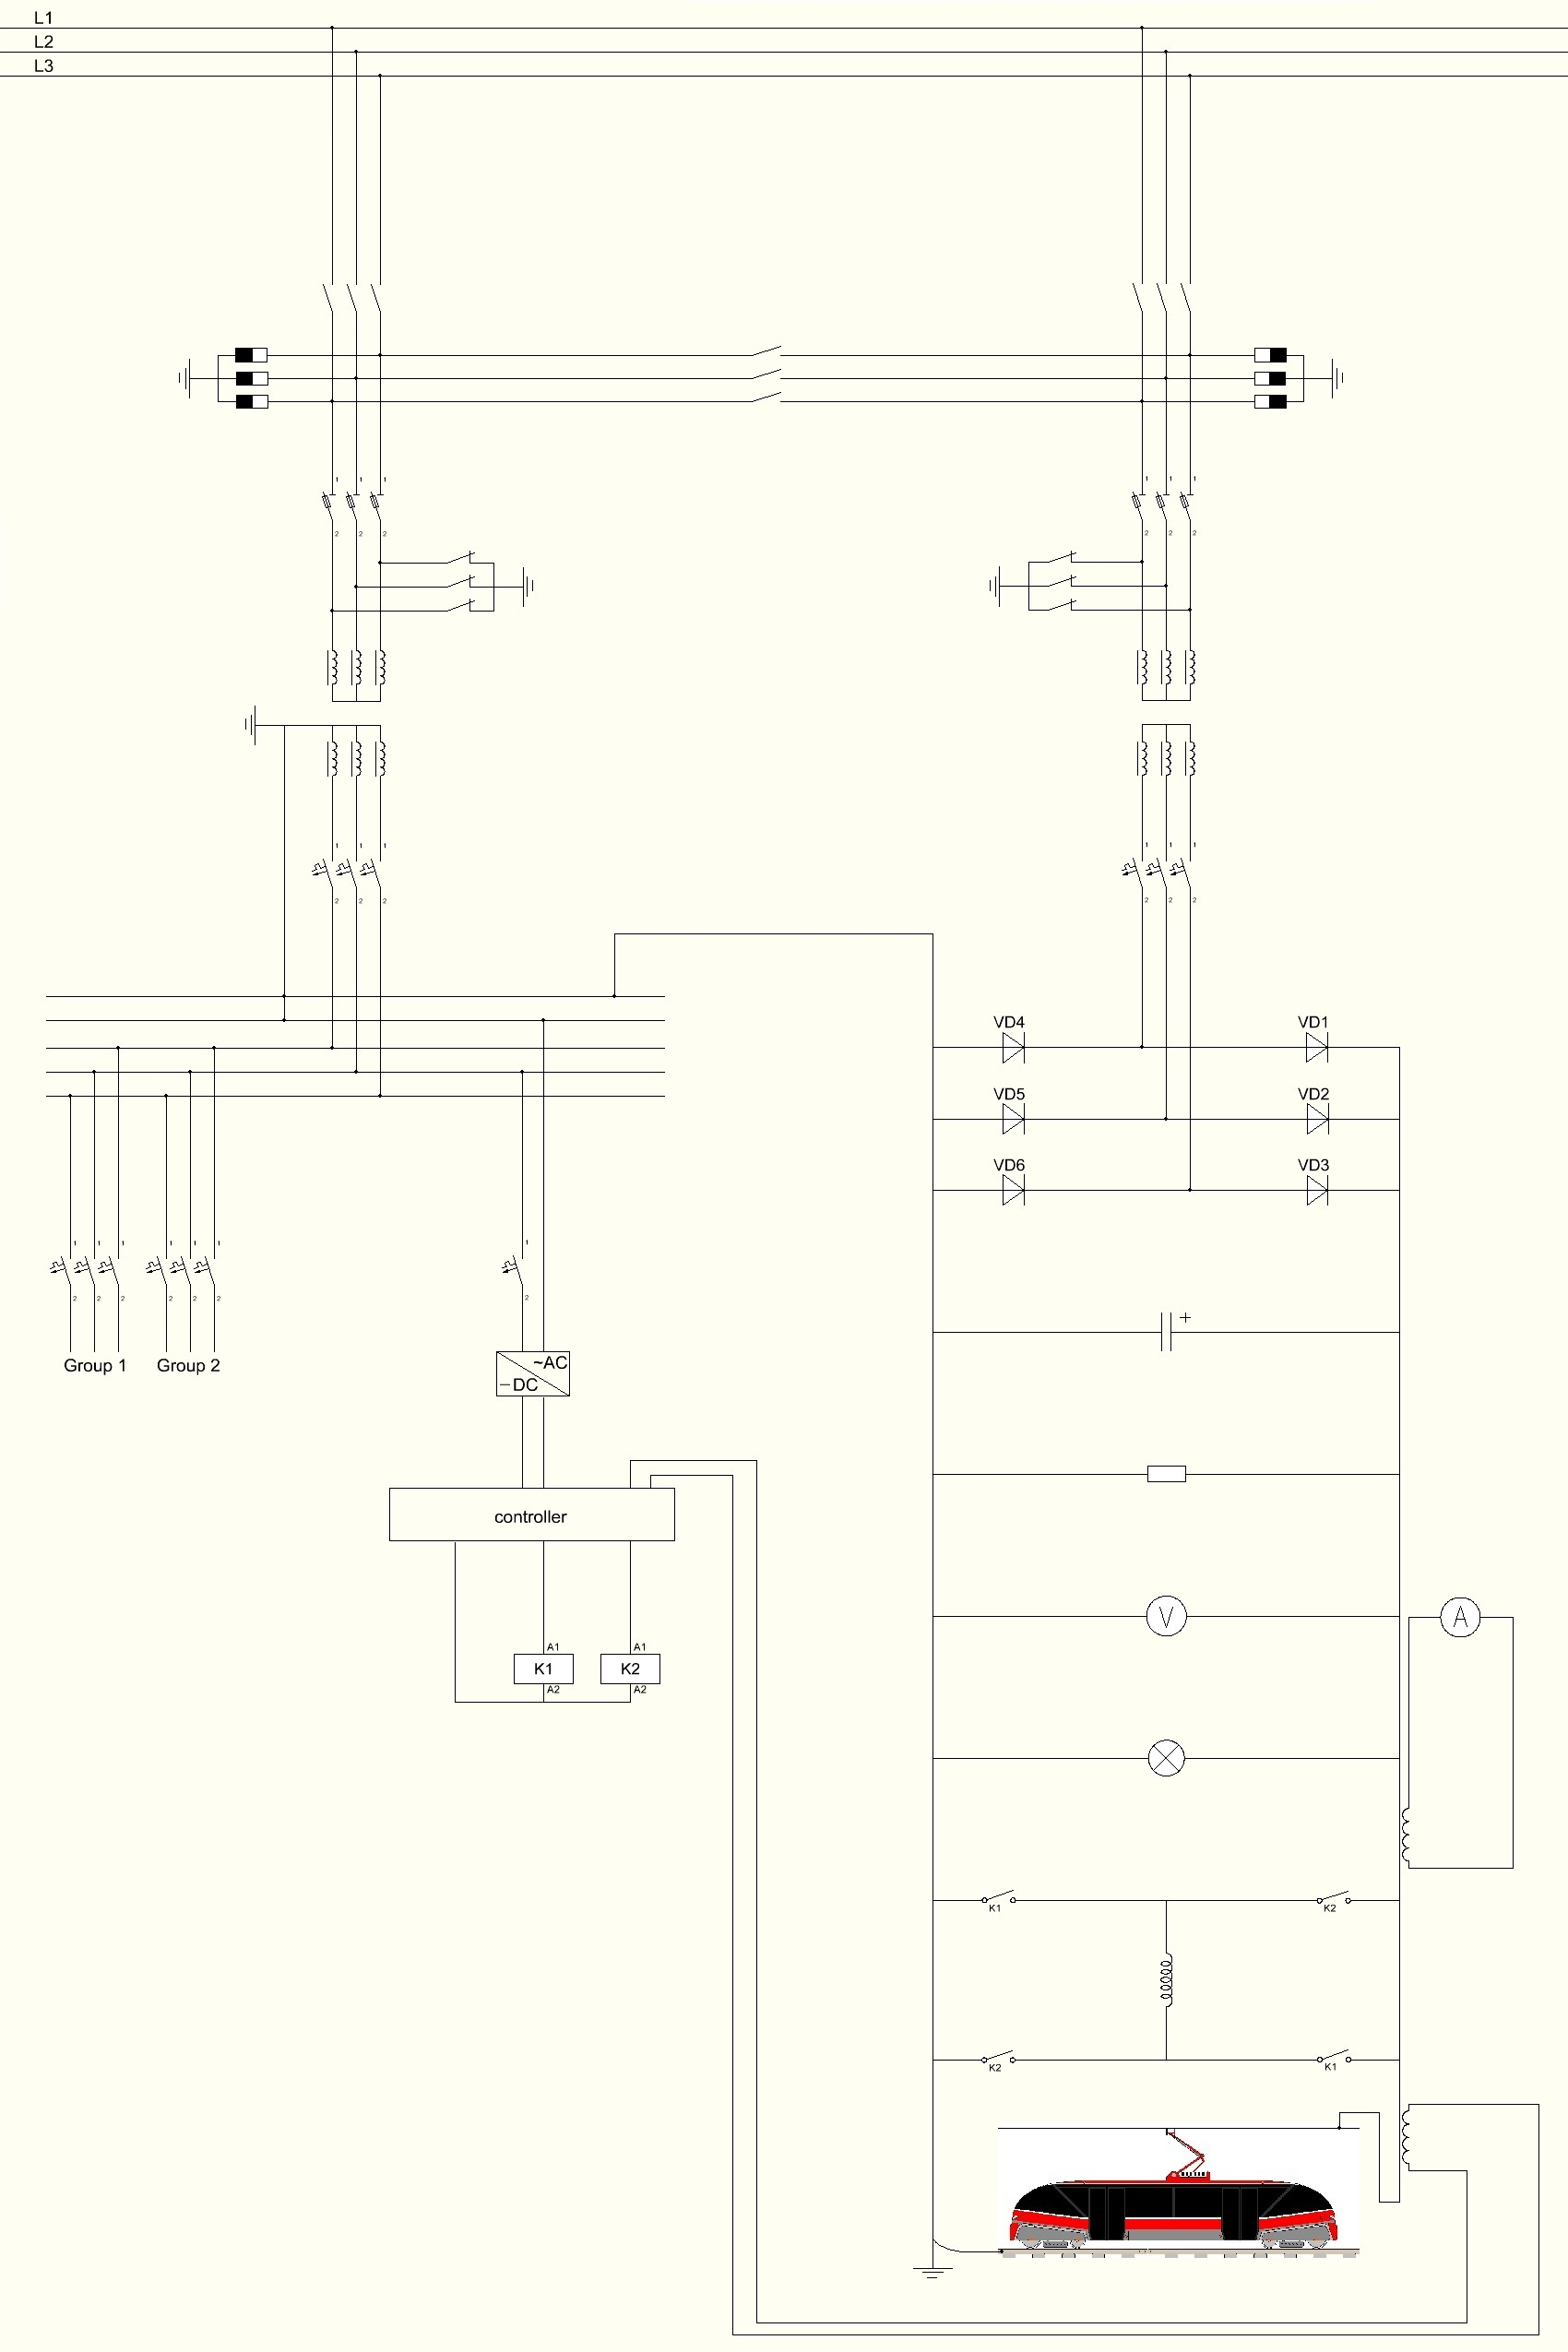 File:Wiring diagram of traction substation for dummies.JPG